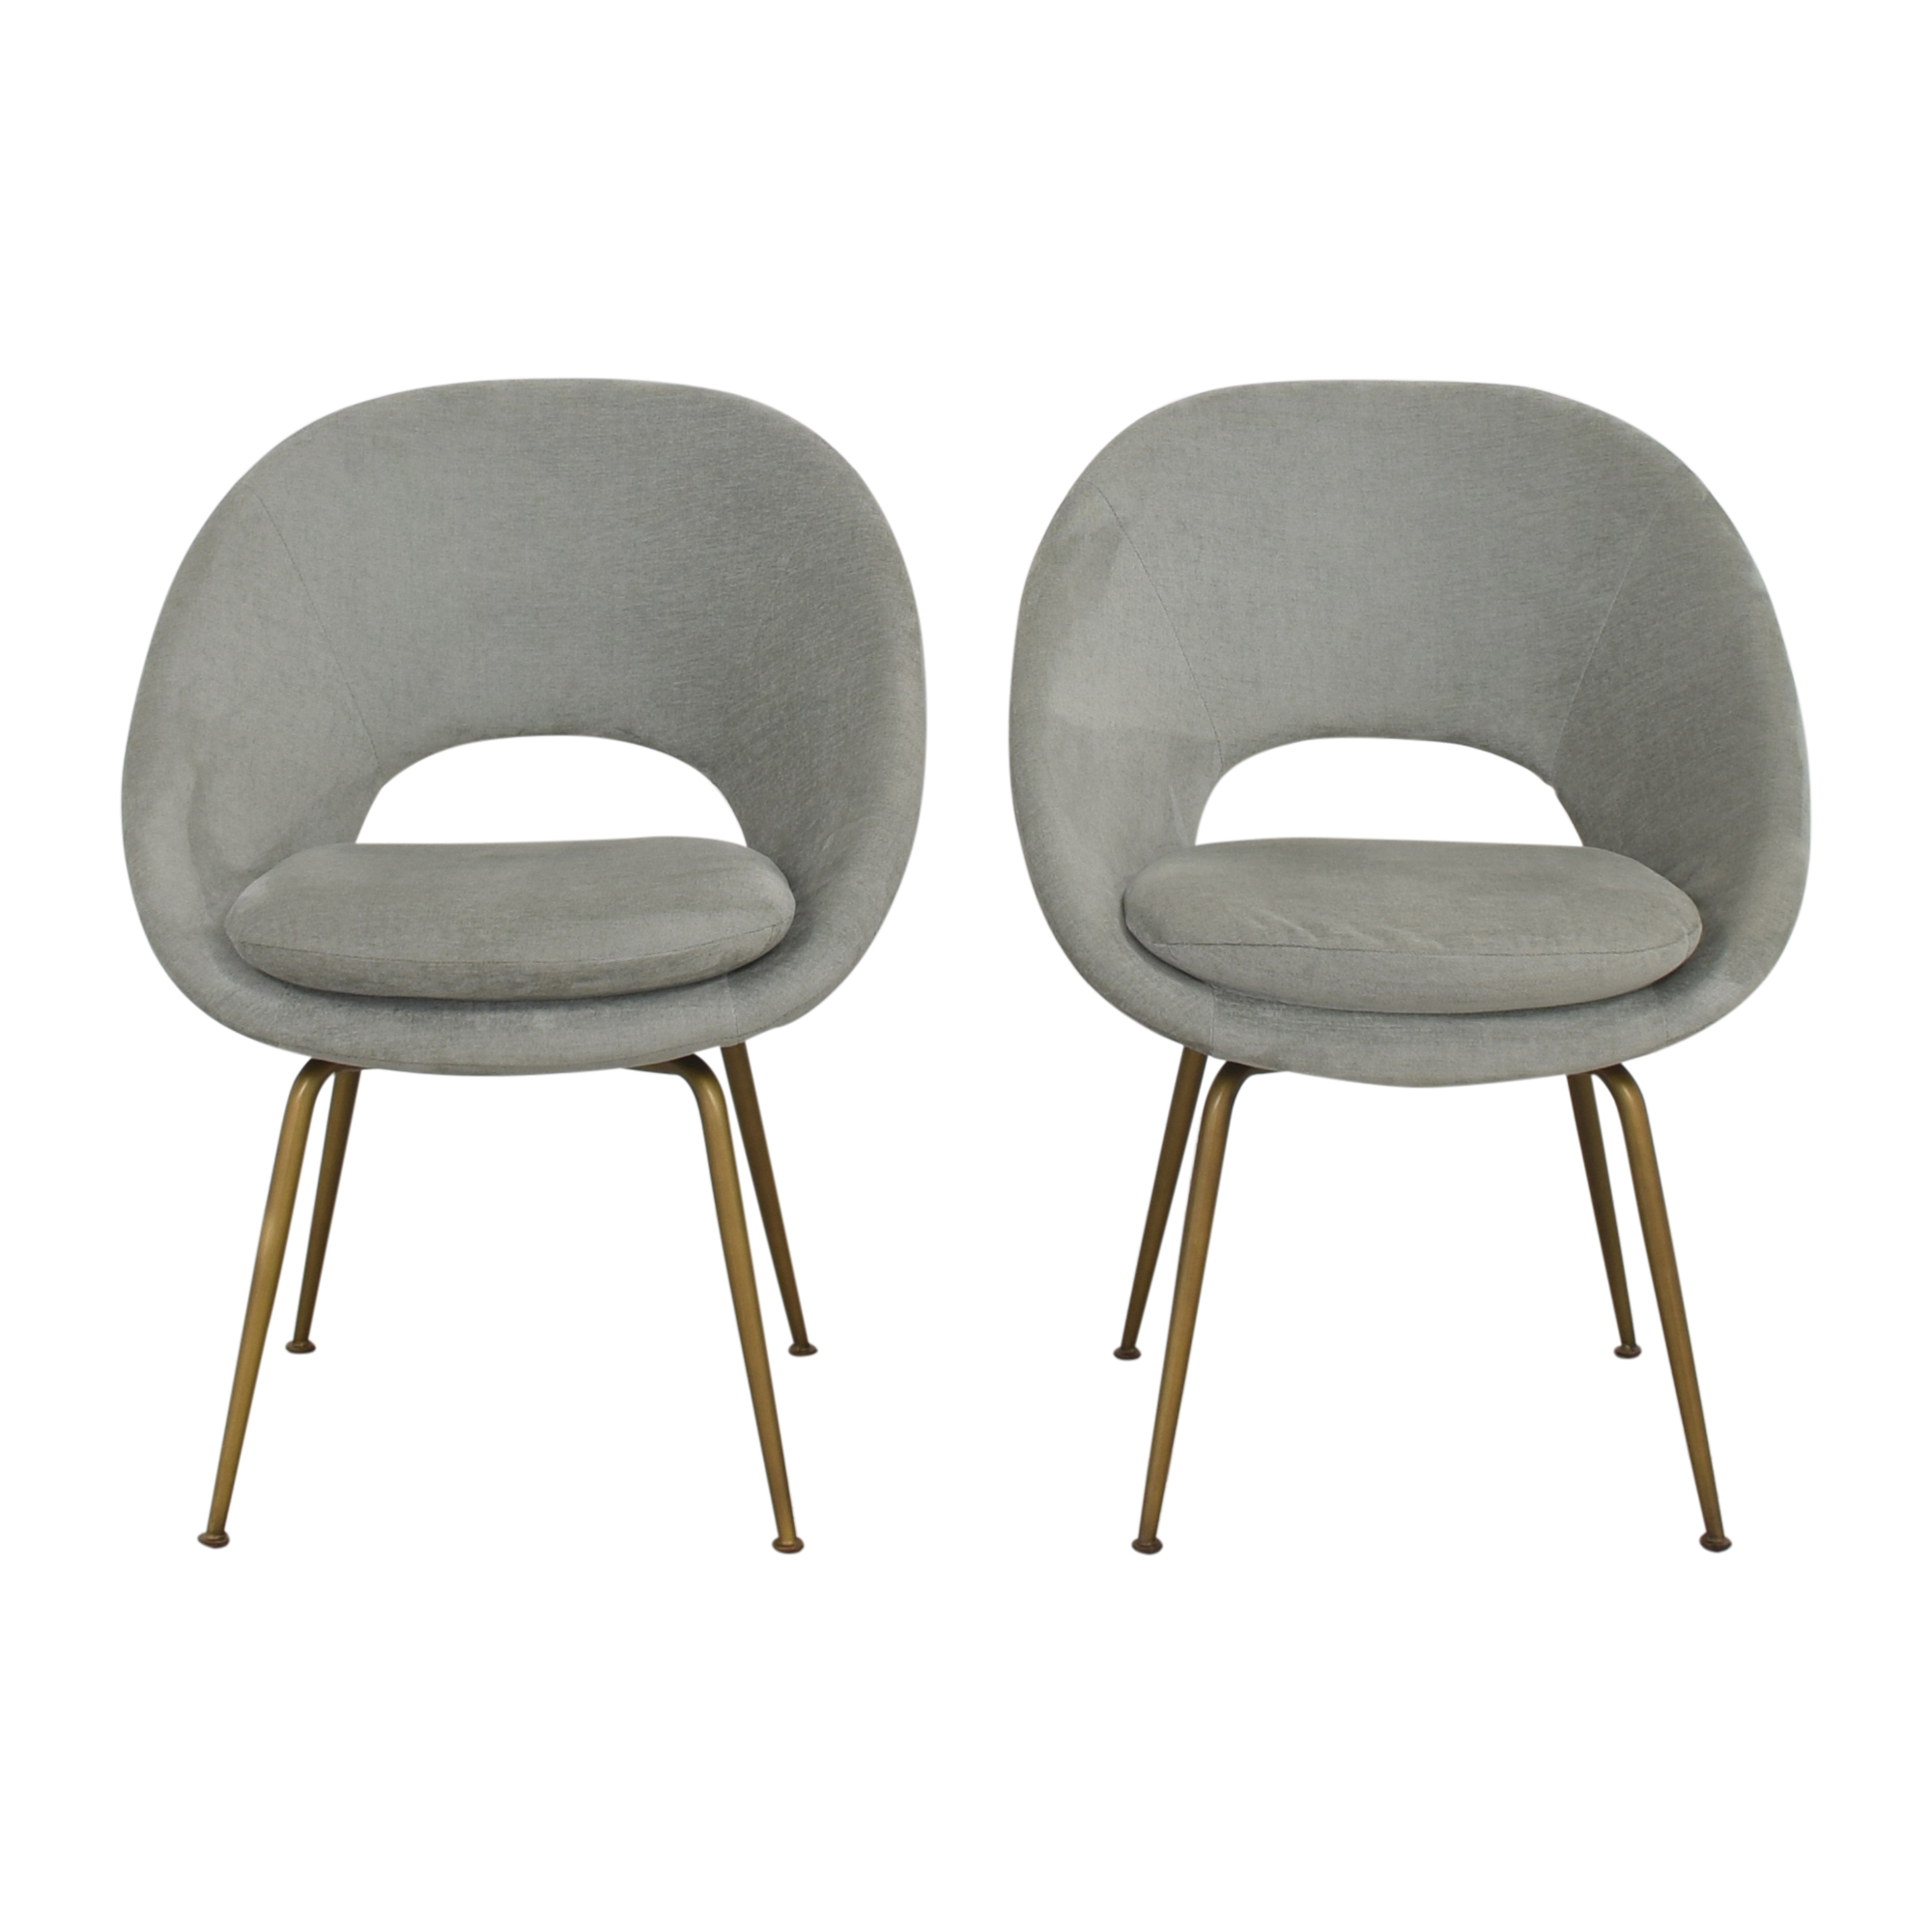 West Elm West Elm Orb Upholstered Dining Chairs gray and gold